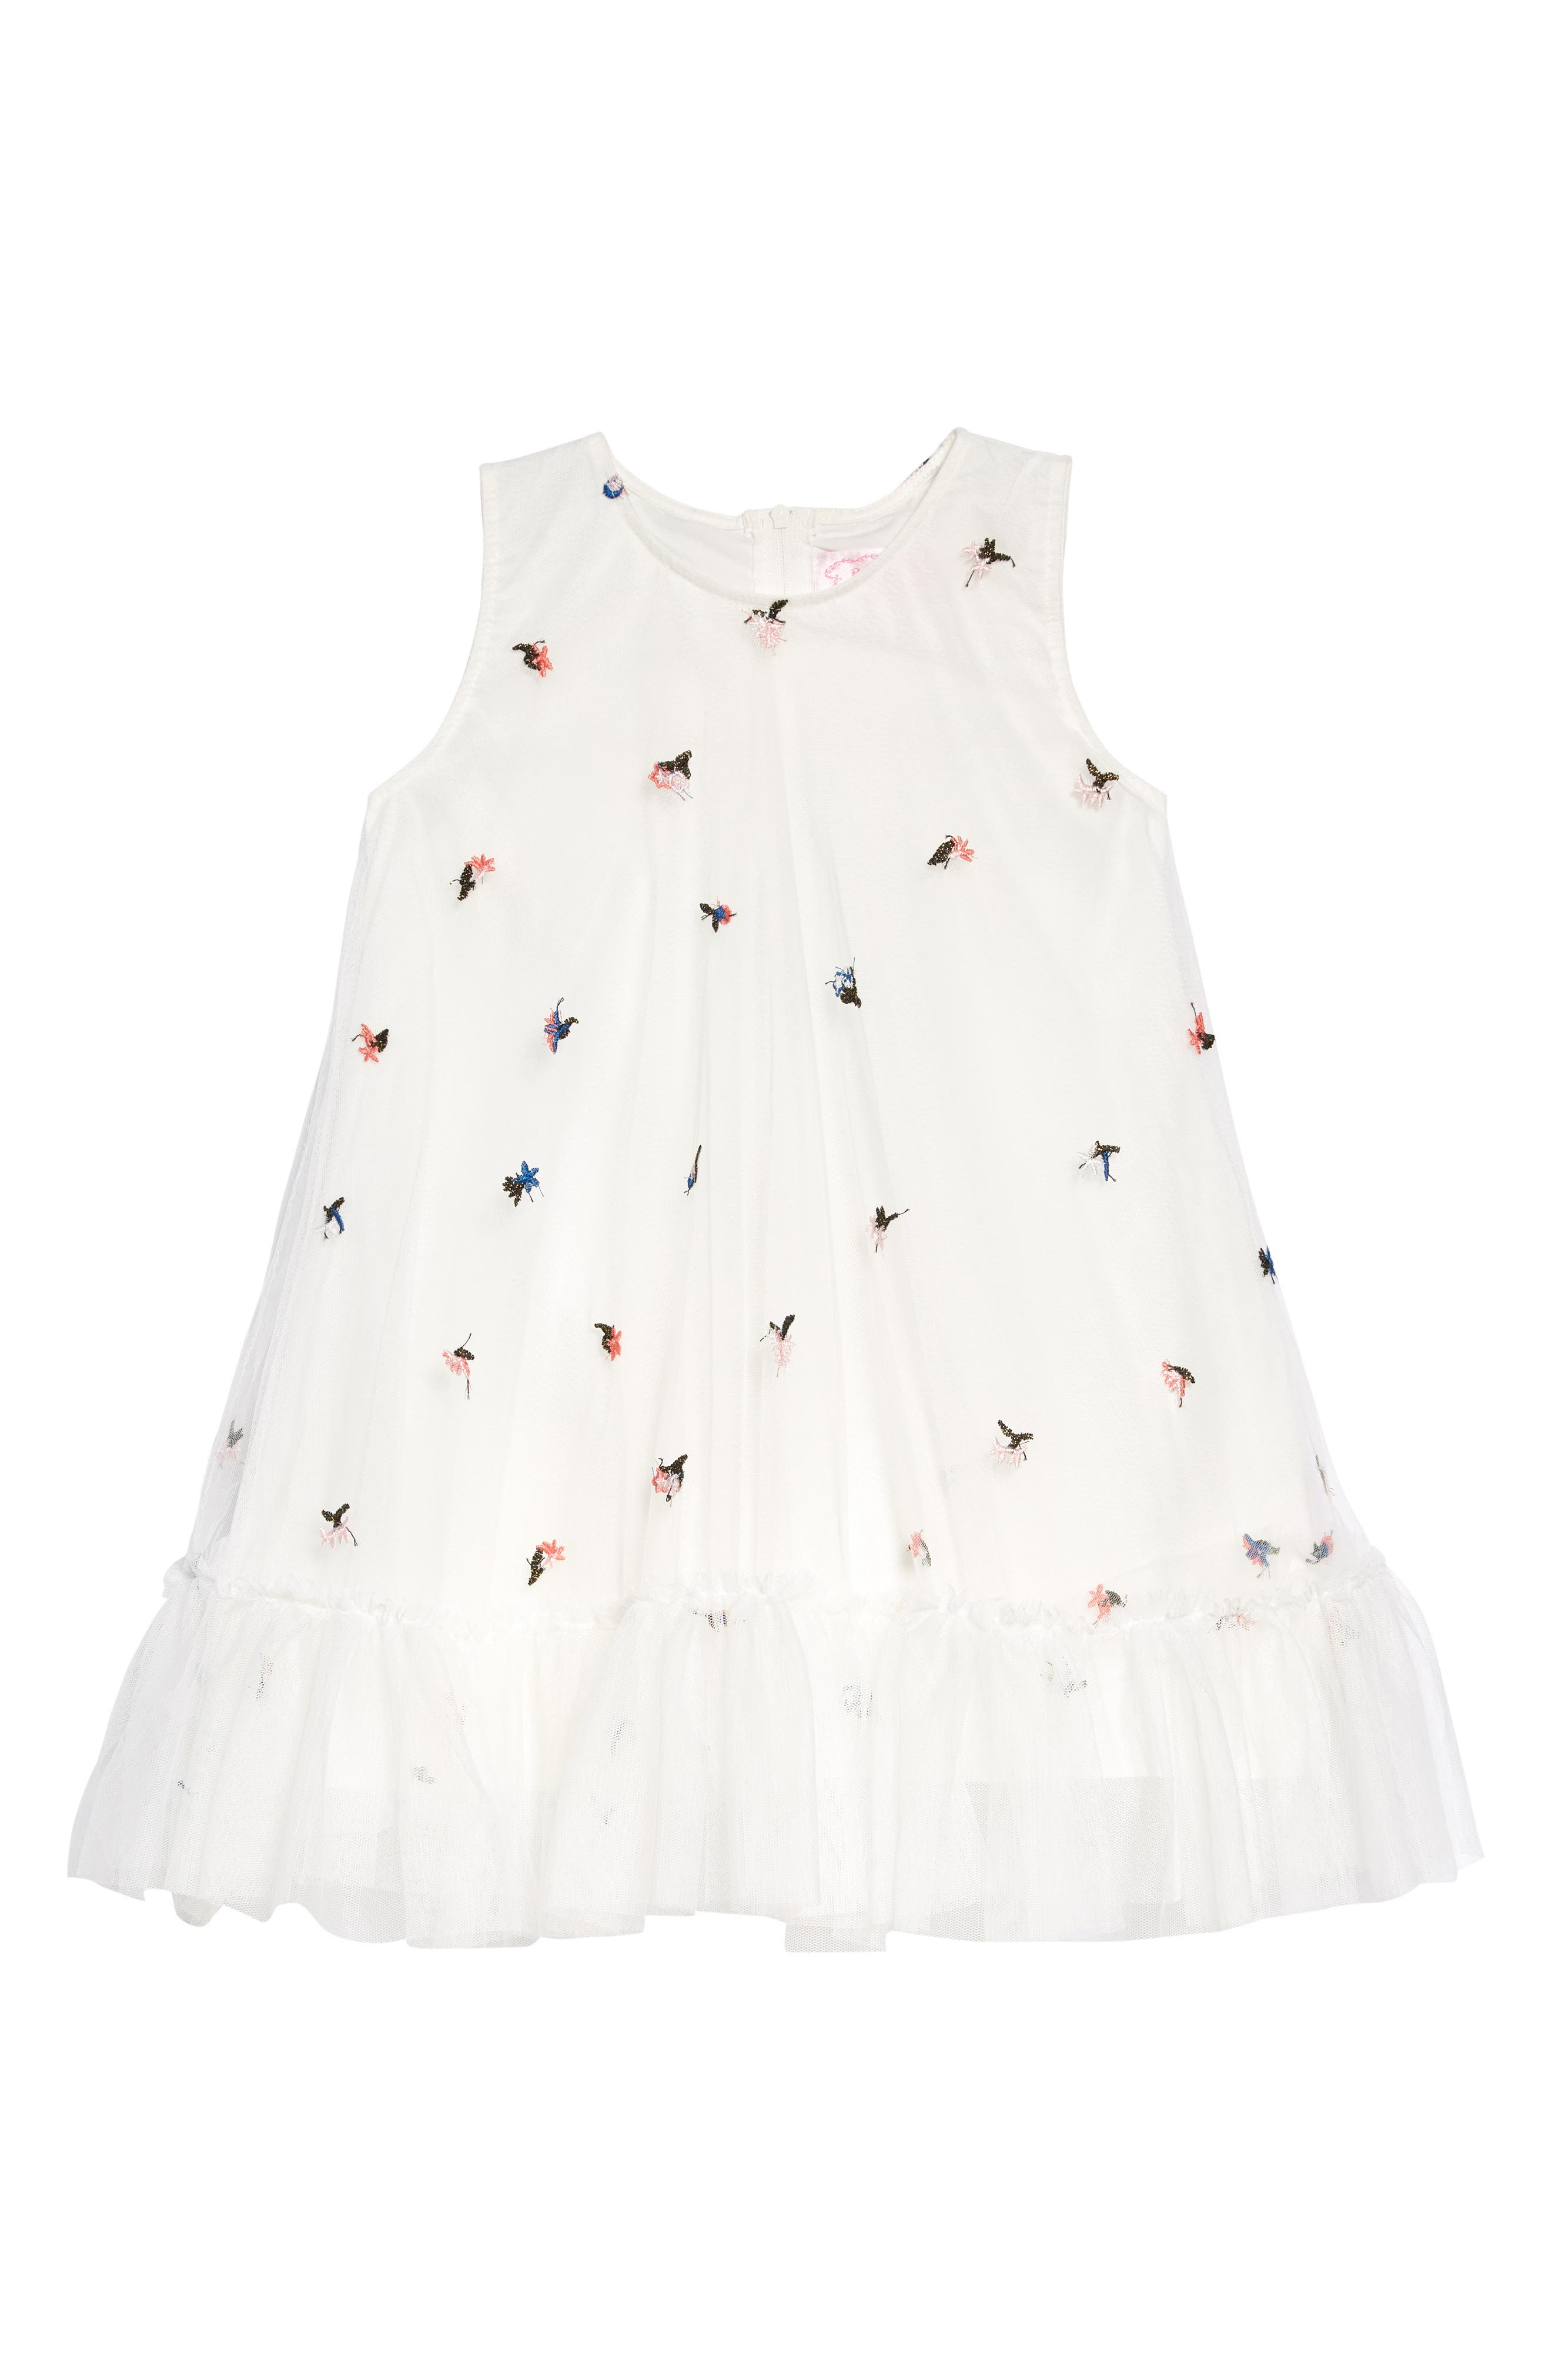 POPATU Floral Embroidered Tulle Dress, Main, color, WHITE